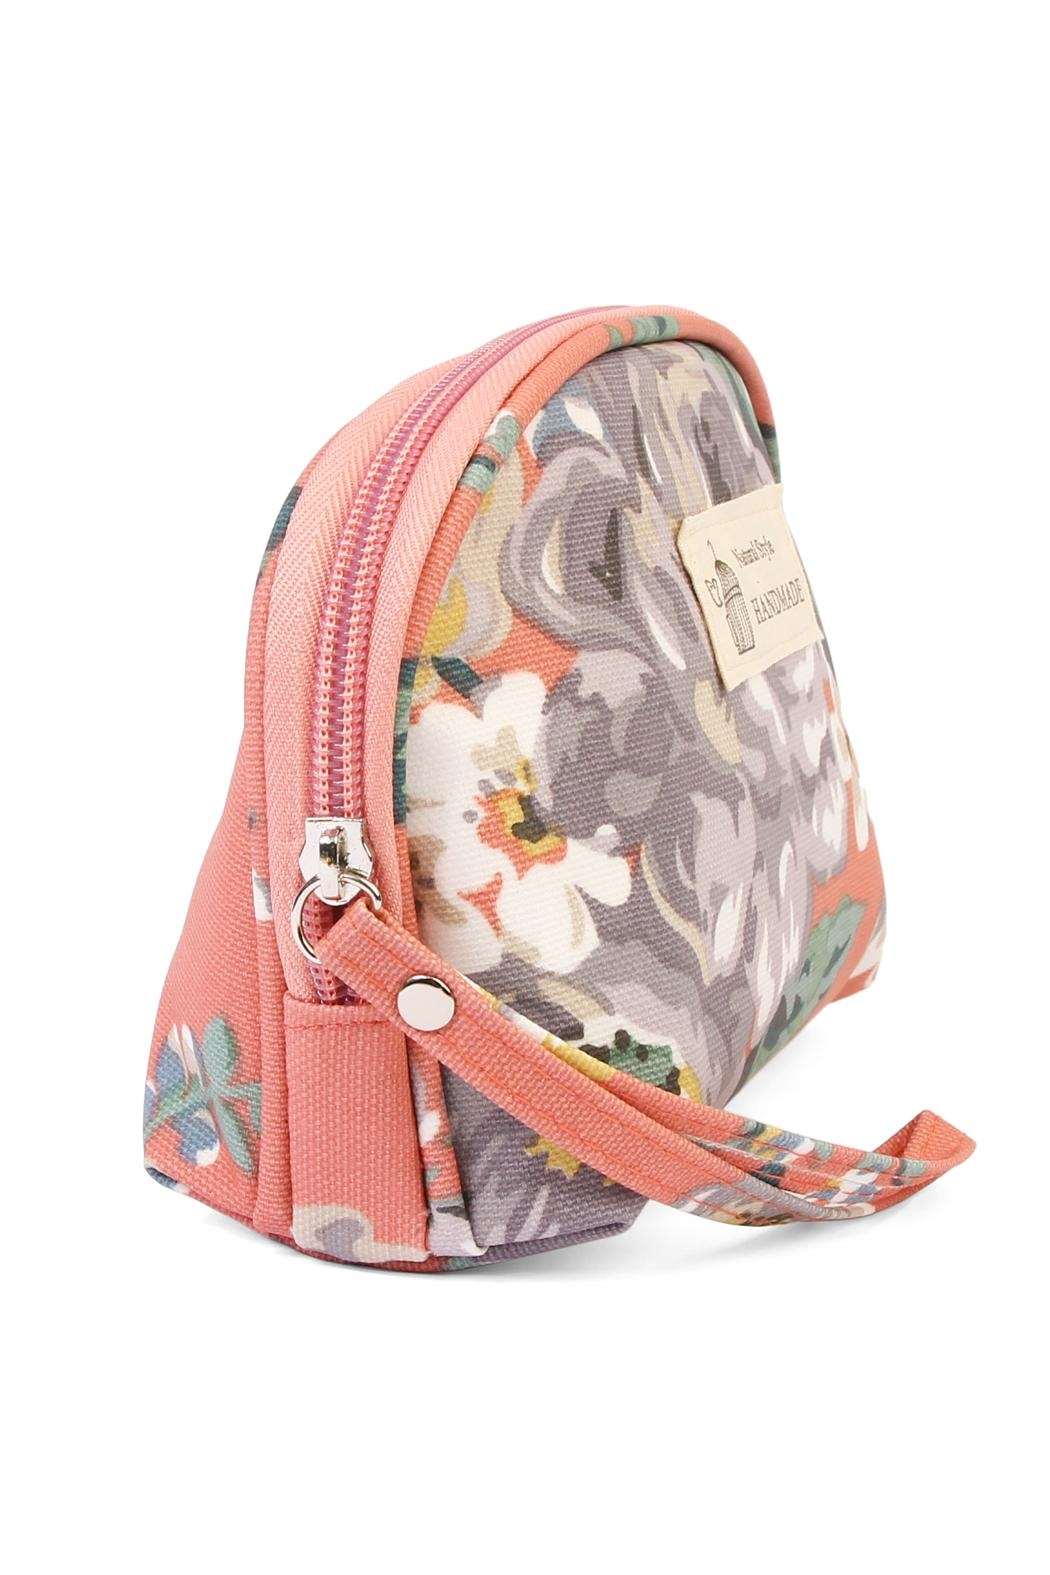 Riah Fashion Coral Petite Cosmetic Bag - Front Full Image